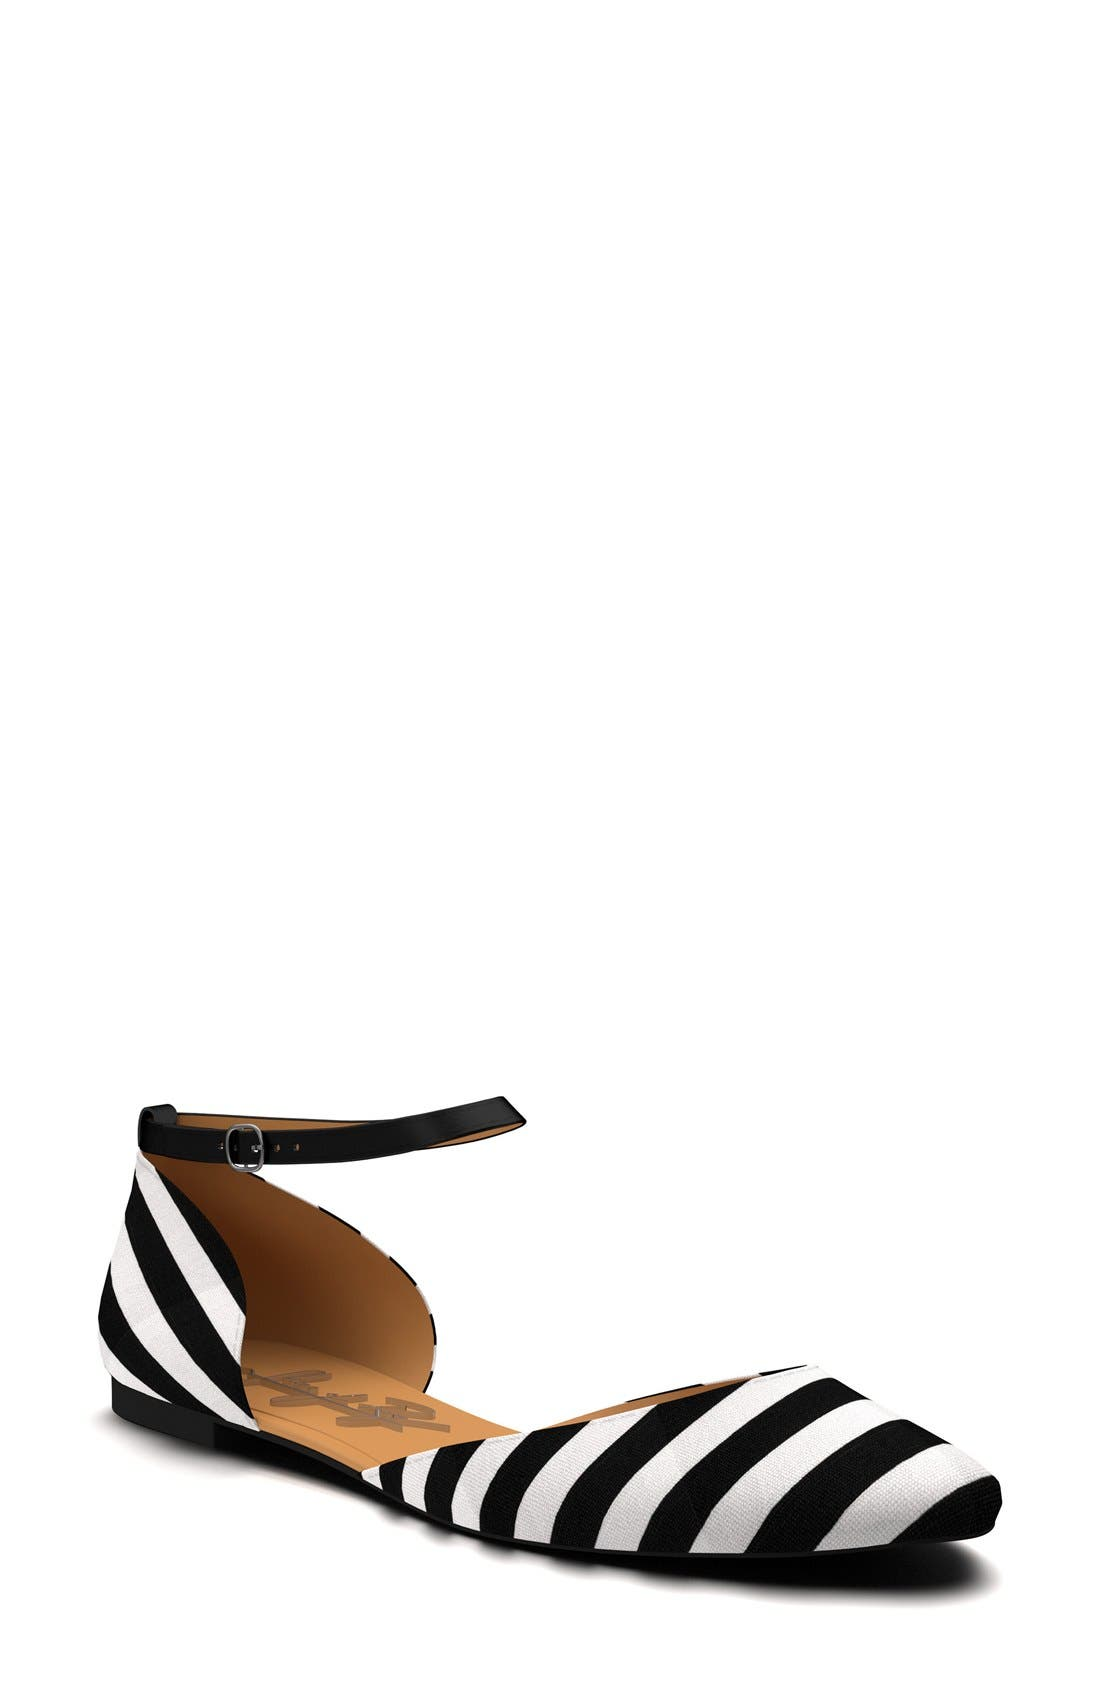 Main Image - Shoes of Prey Ankle Strap d'Orsay Flat (Women)